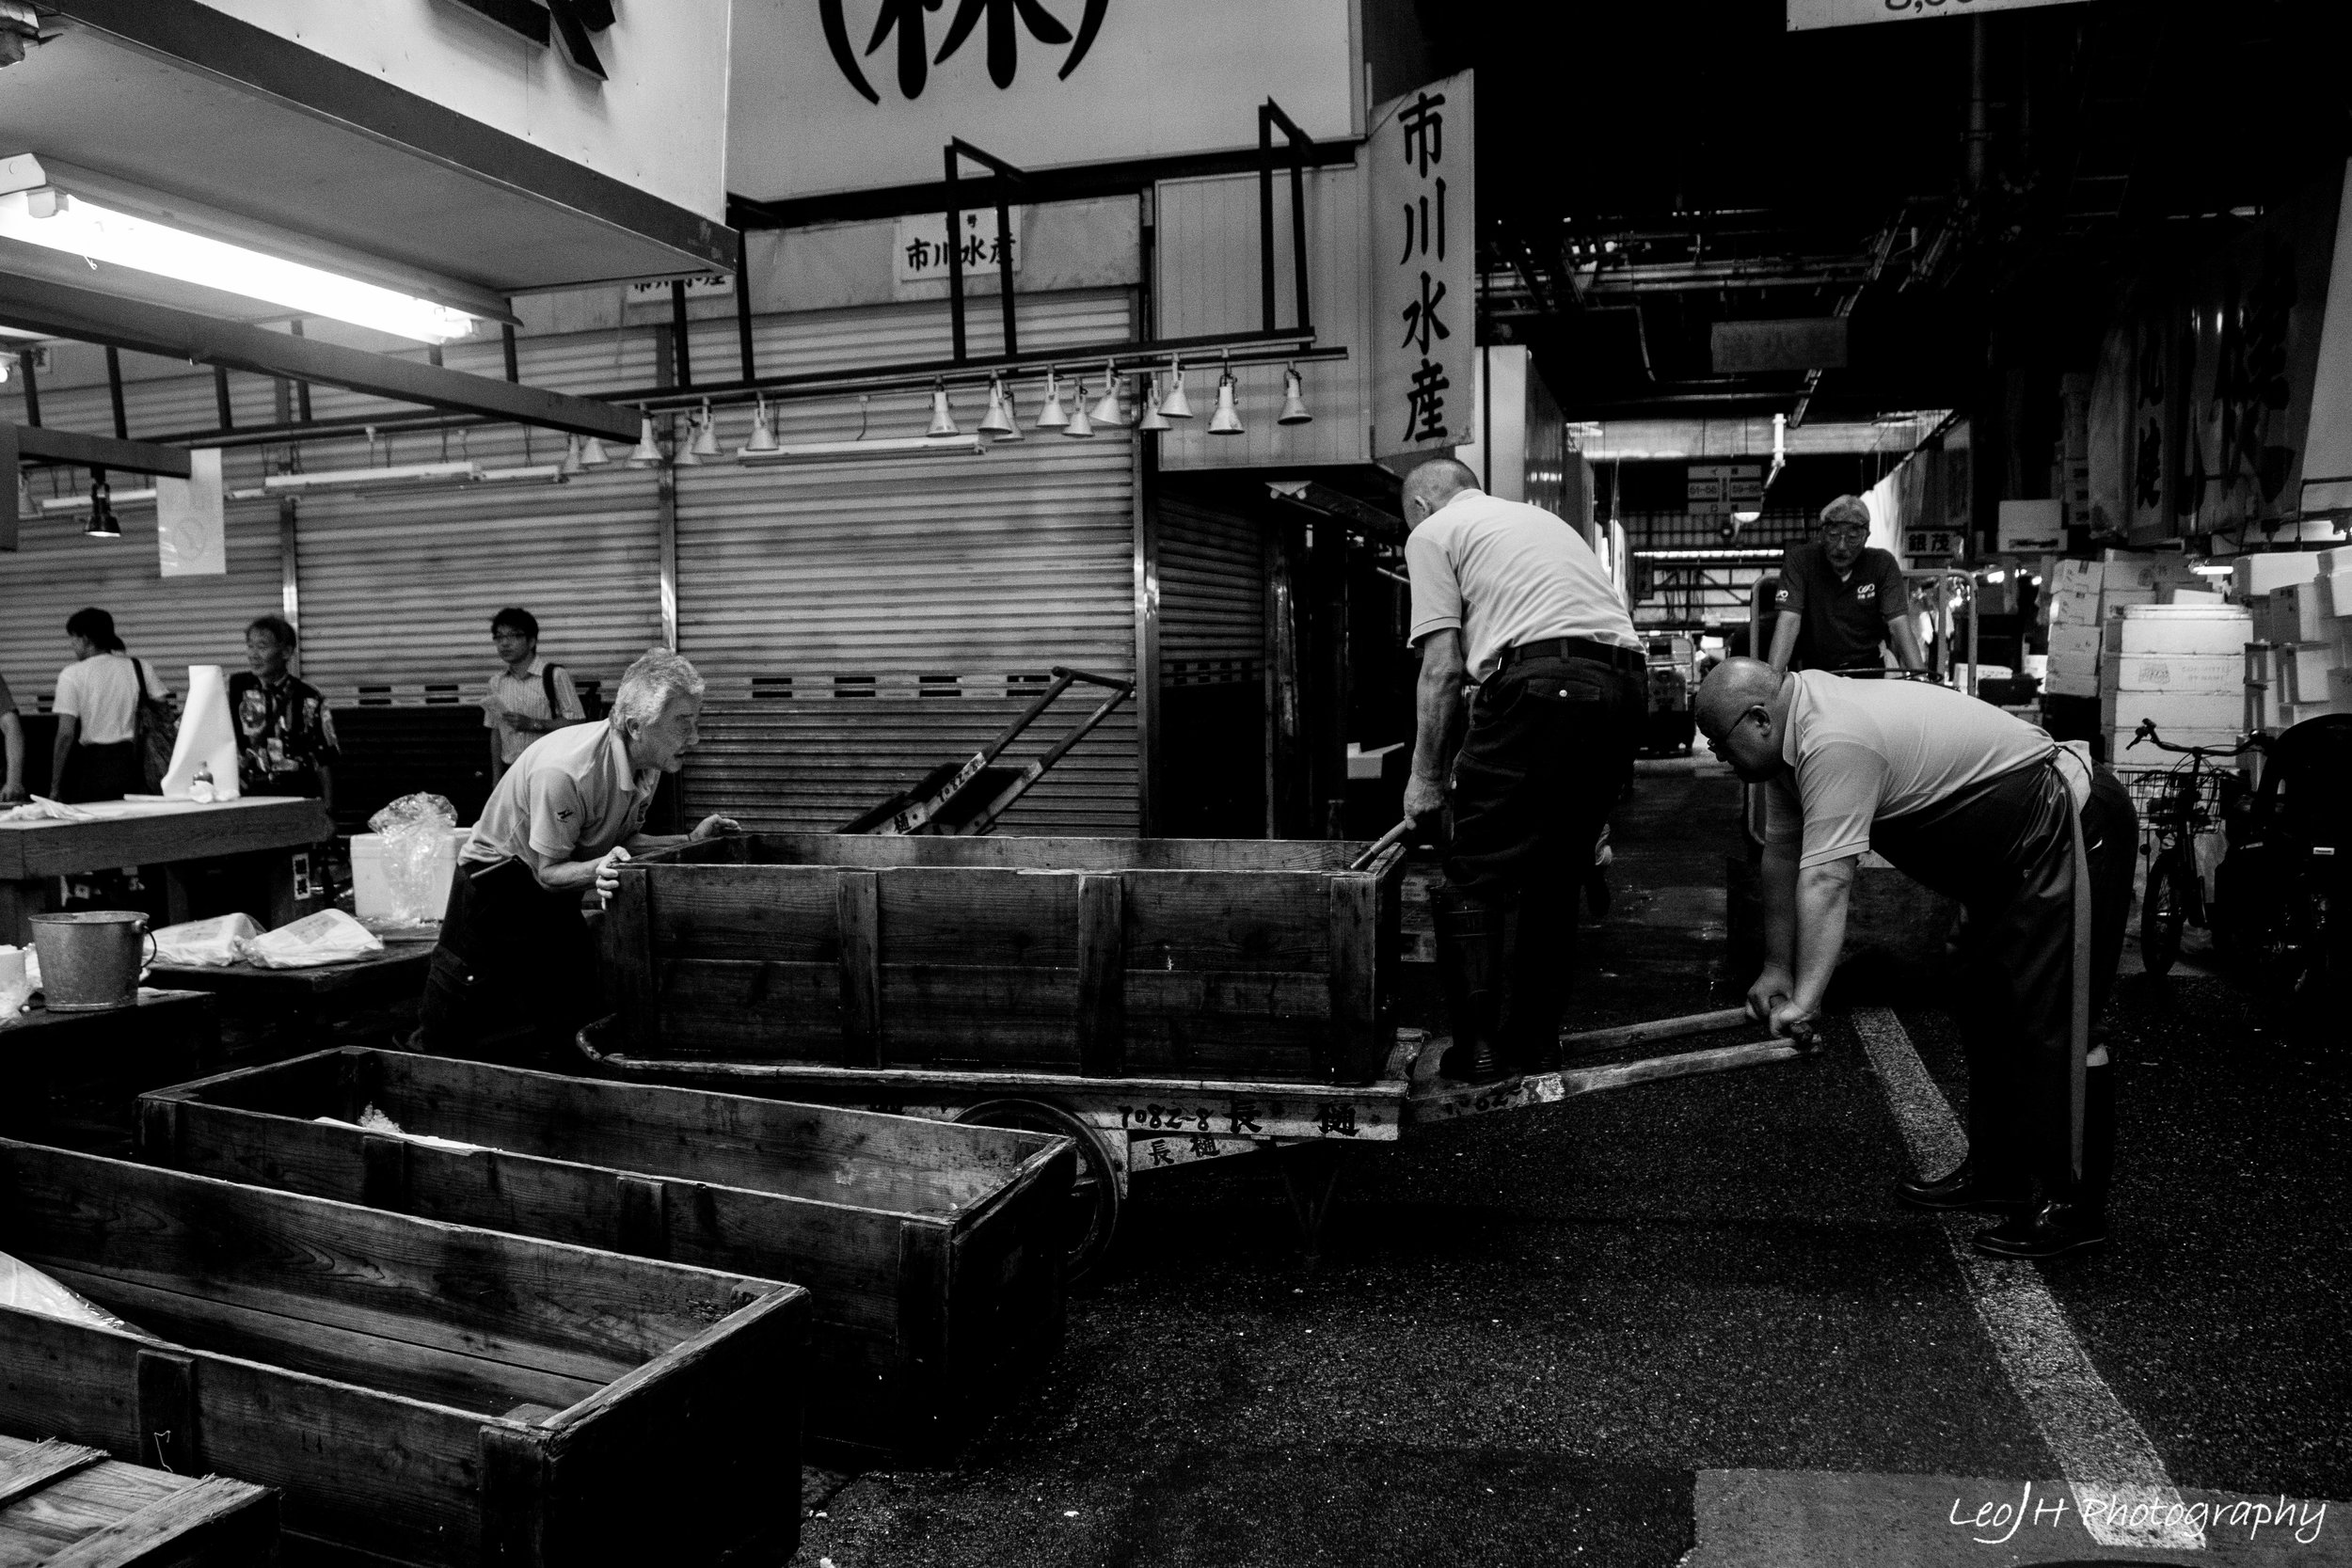 Daily lives of Tsukiji Market sellers: moving huge empty containers